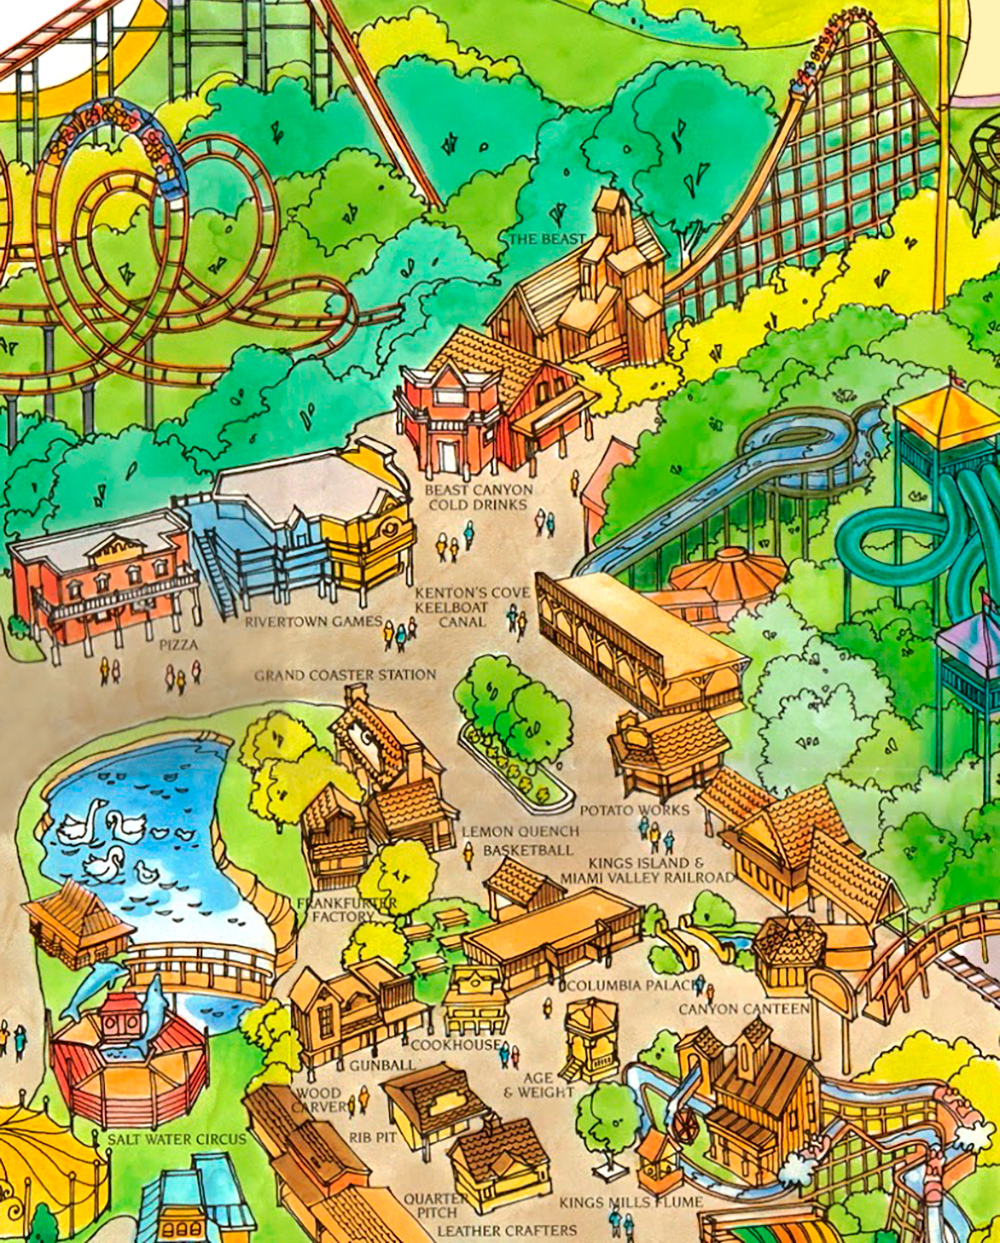 Rivertown area on Kings Island 1989 souvenir park map poster.